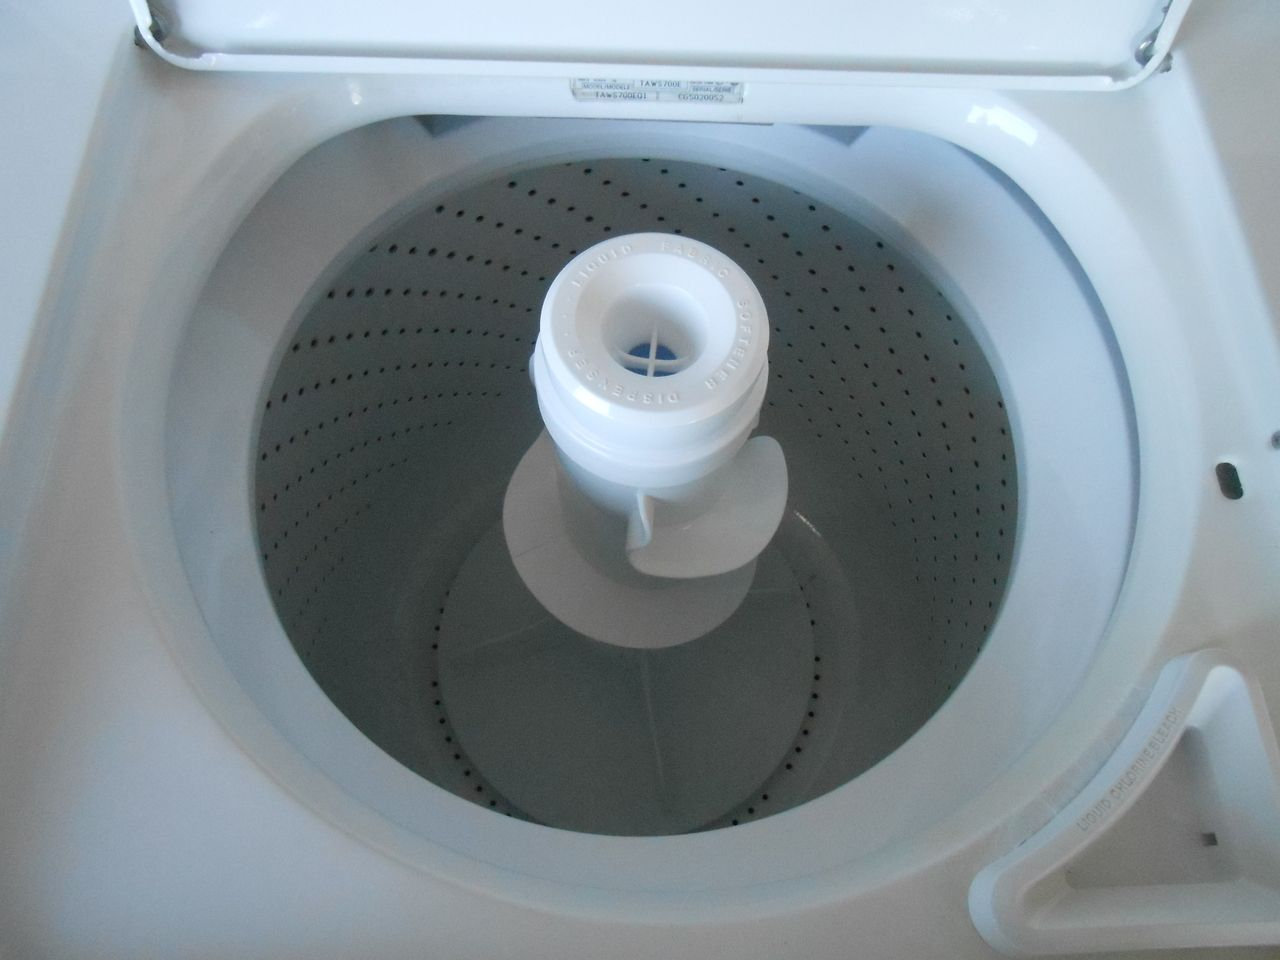 appliance city estate by whirlpool top load washer 8 cycle 2 speed 12